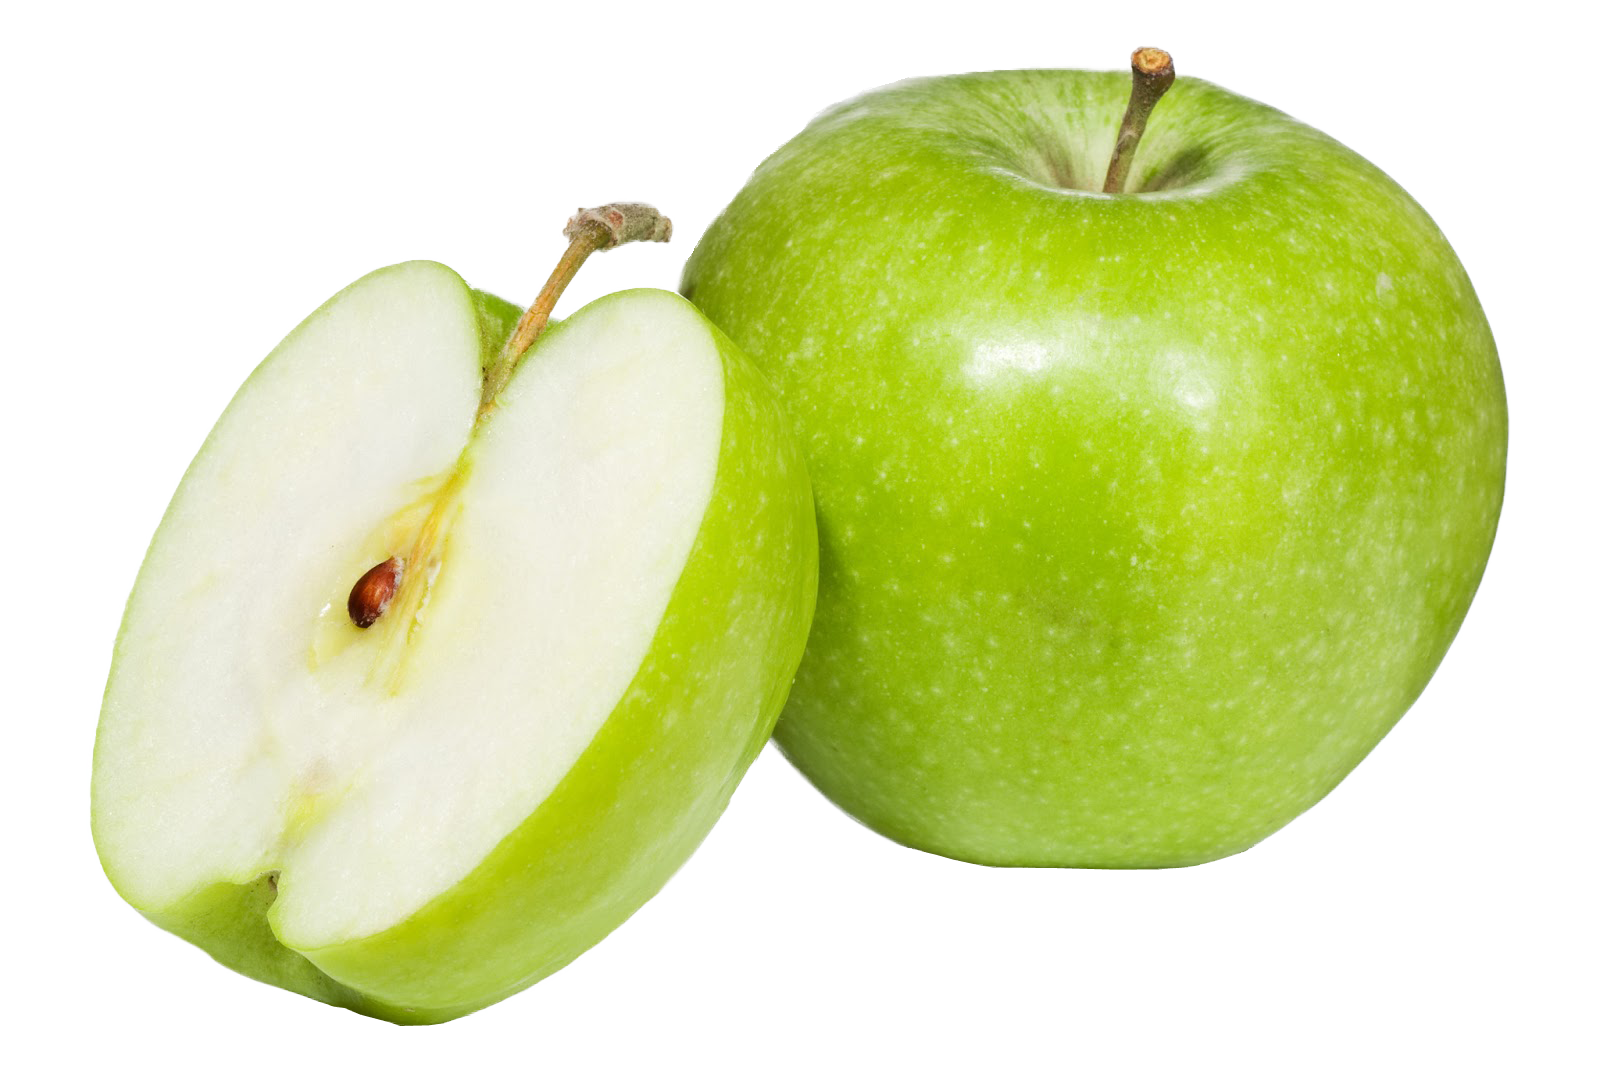 Apple images free download. Green apples png jpg royalty free